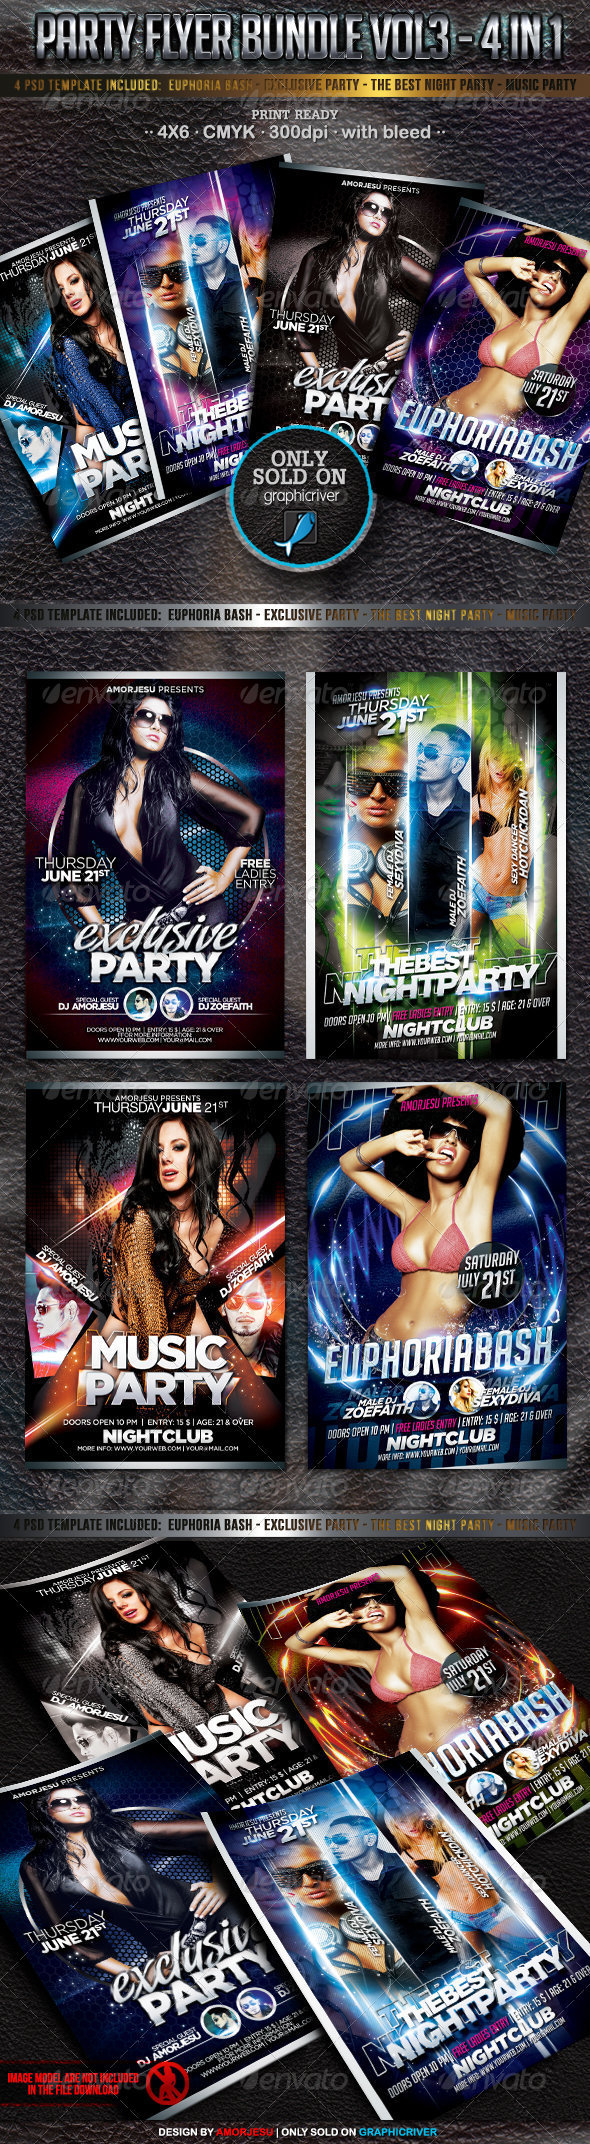 Party Flyer Bundle Vol3 - 4 in 1 - Events Flyers